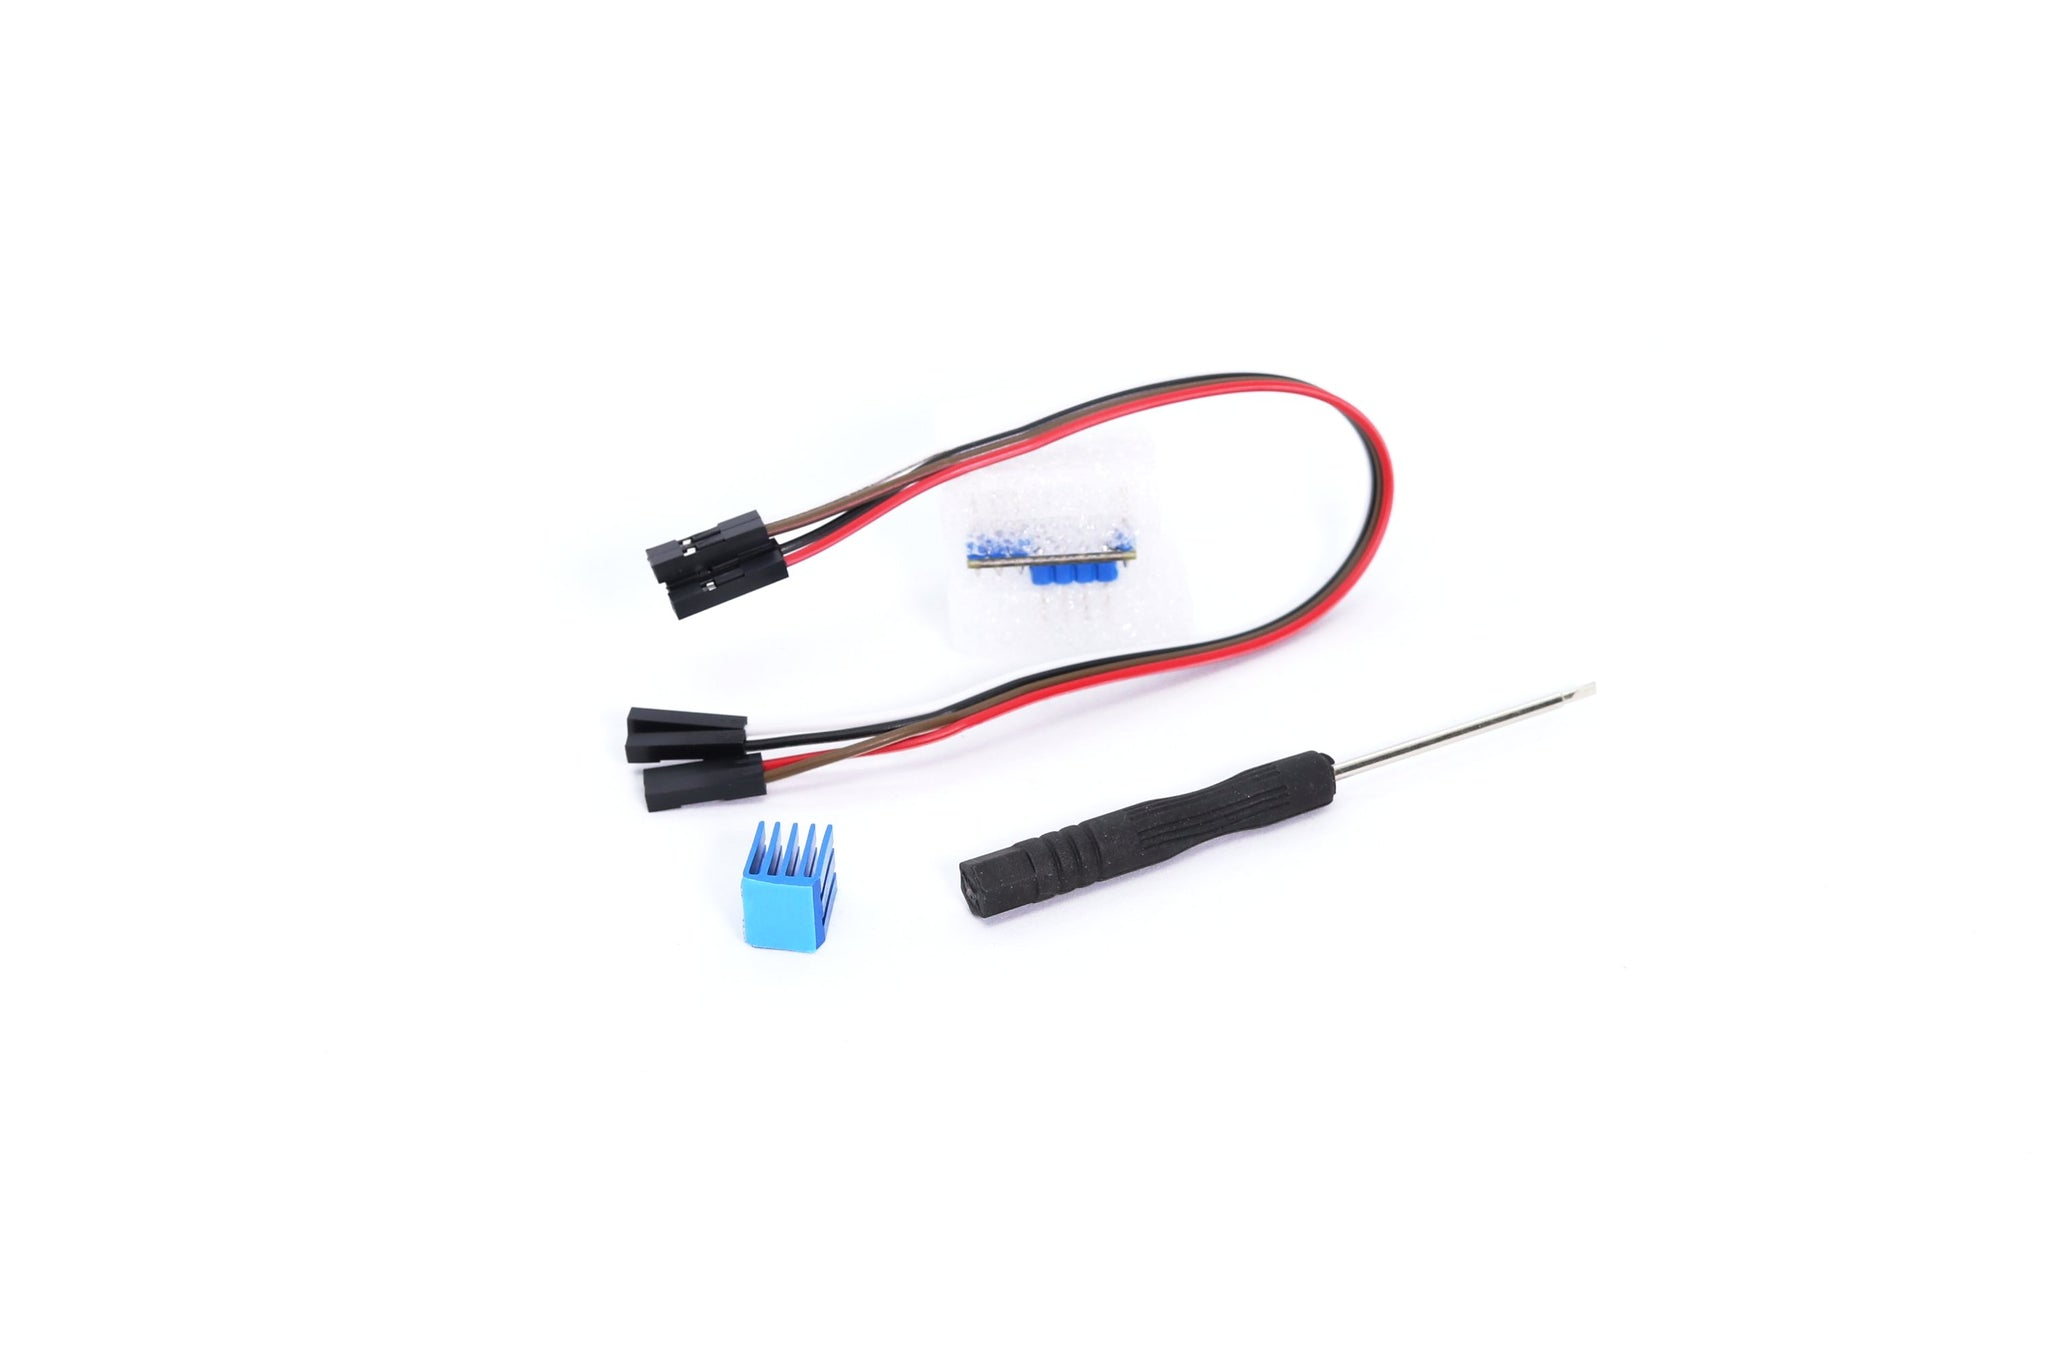 3D Printing Canada - TMC2130 V1 1 Stepper Motor Driver with Cables